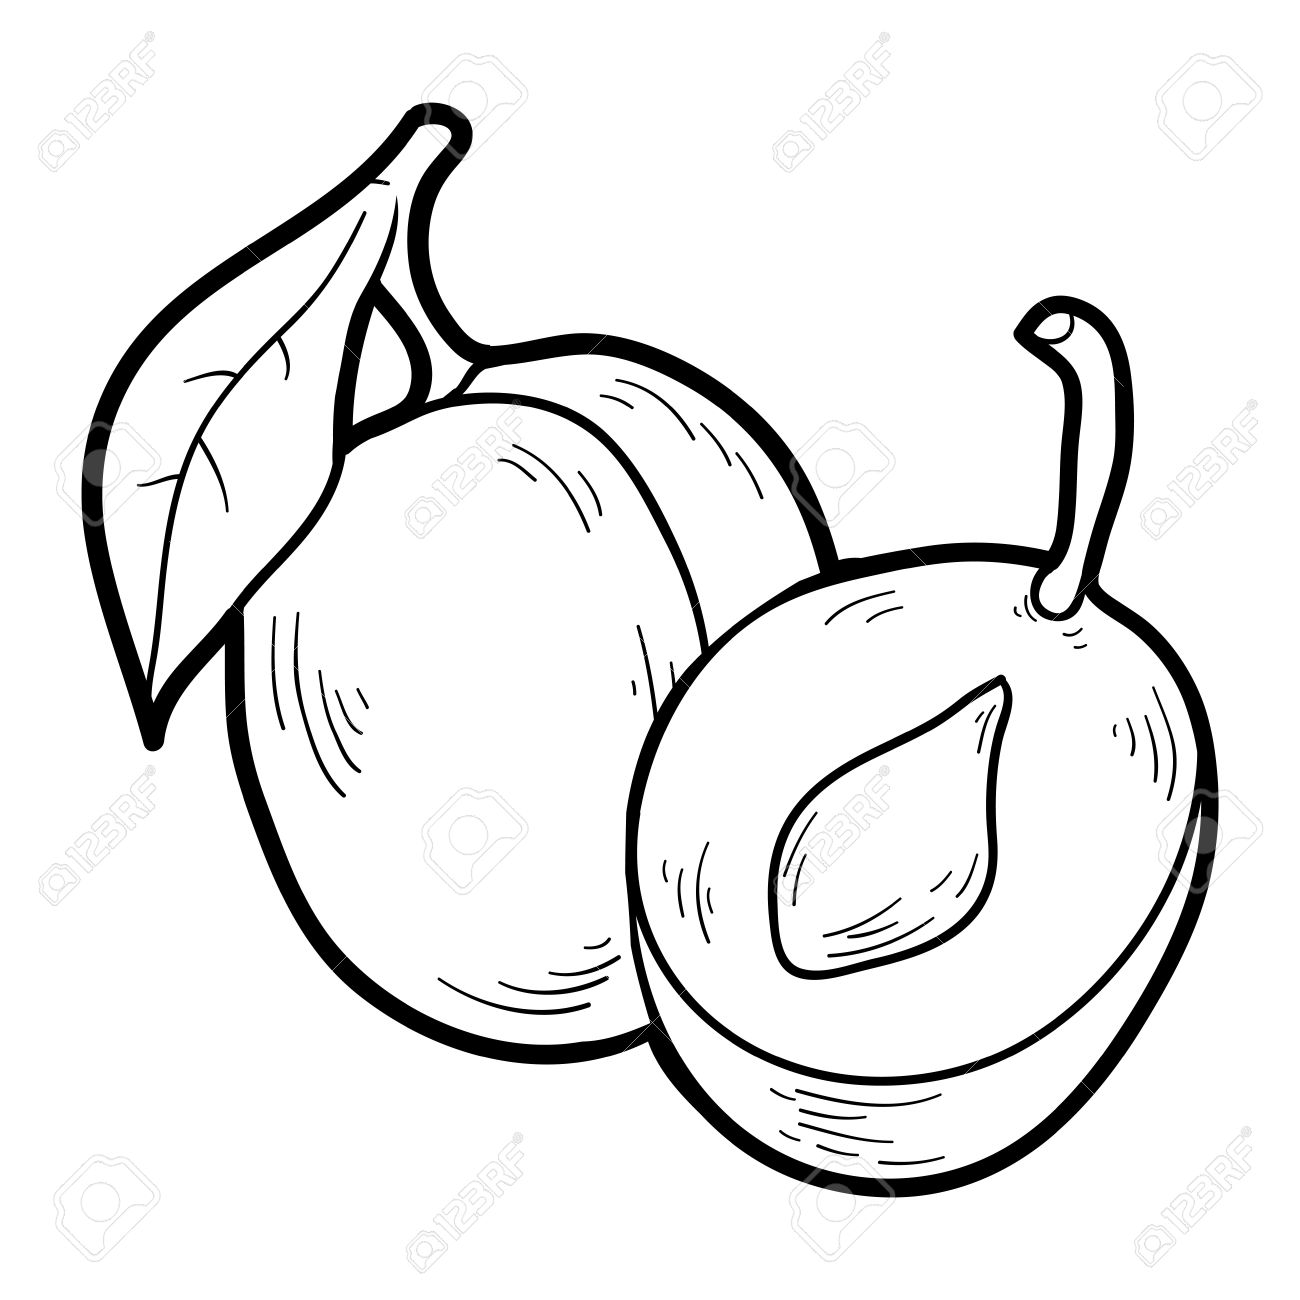 Coloring Book For Children Fruits And Vegetables Plum Stock Vector